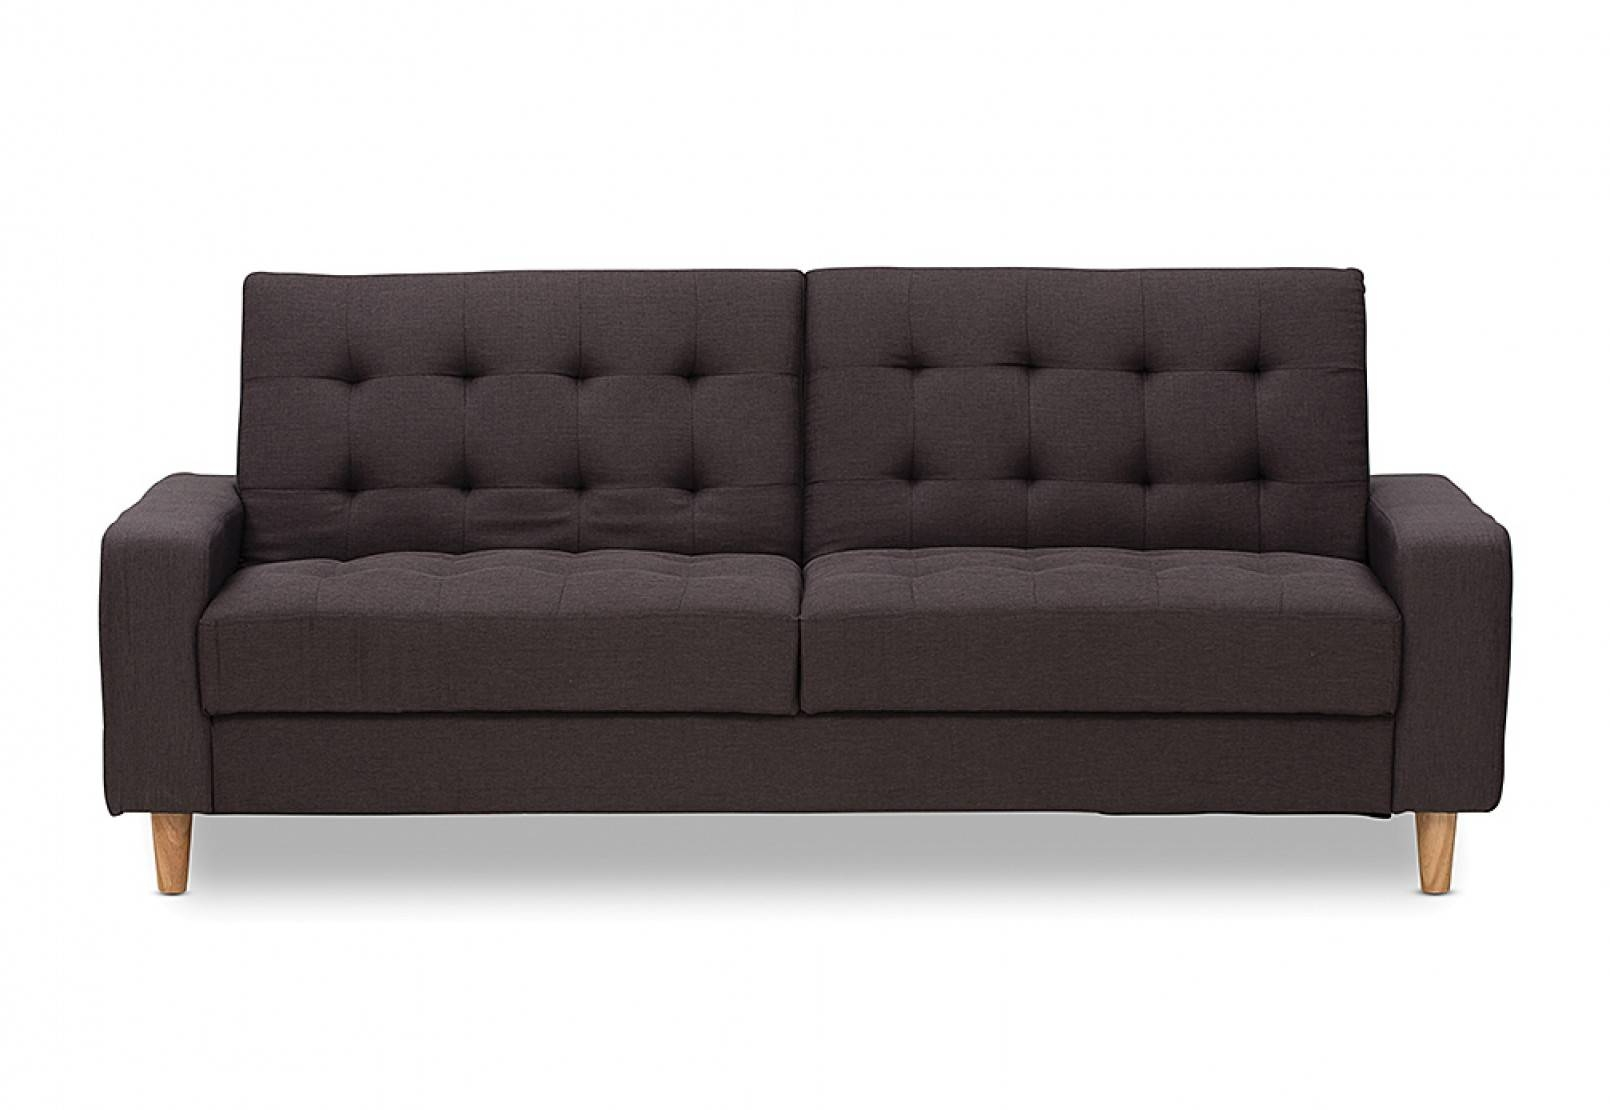 Retreat Fabric Click Clack Sofa Bed | Amart Furniture inside Clic Clac Sofa Beds (Image 13 of 15)